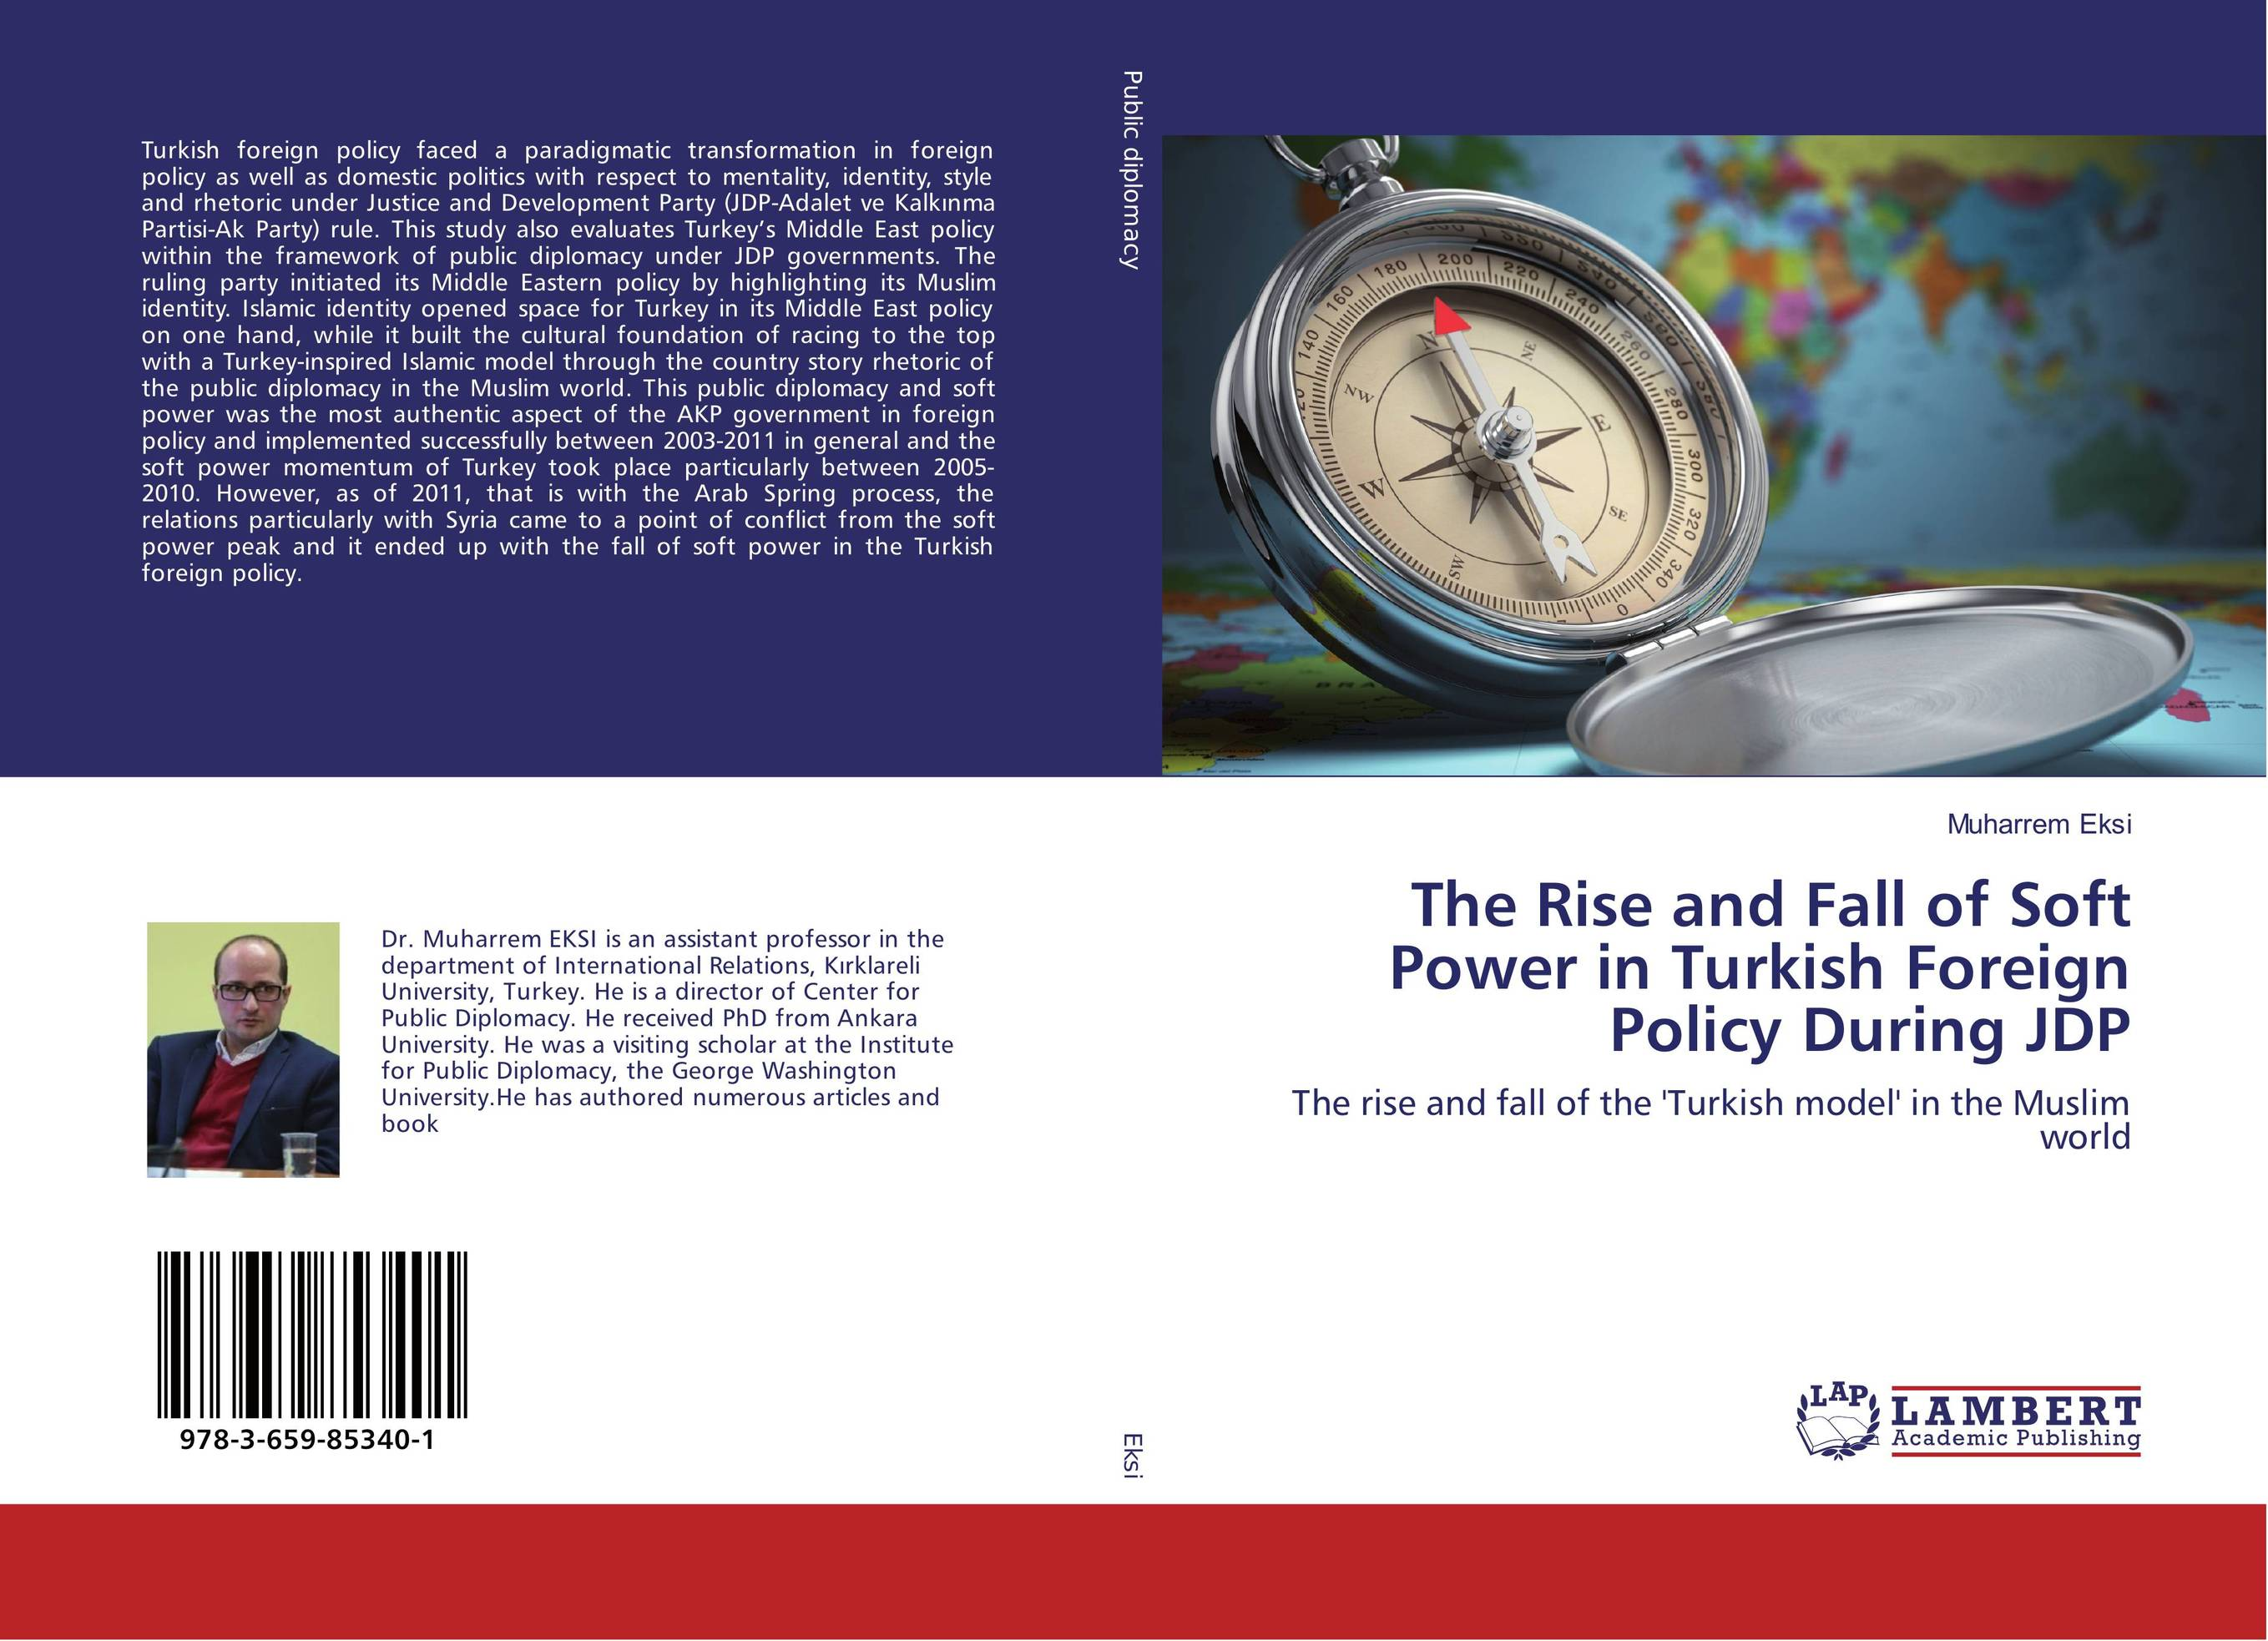 The Rise and Fall of Soft Power in Turkish Foreign Policy During JDP arthur cotterell western power in asia its slow rise and swift fall 1415 1999